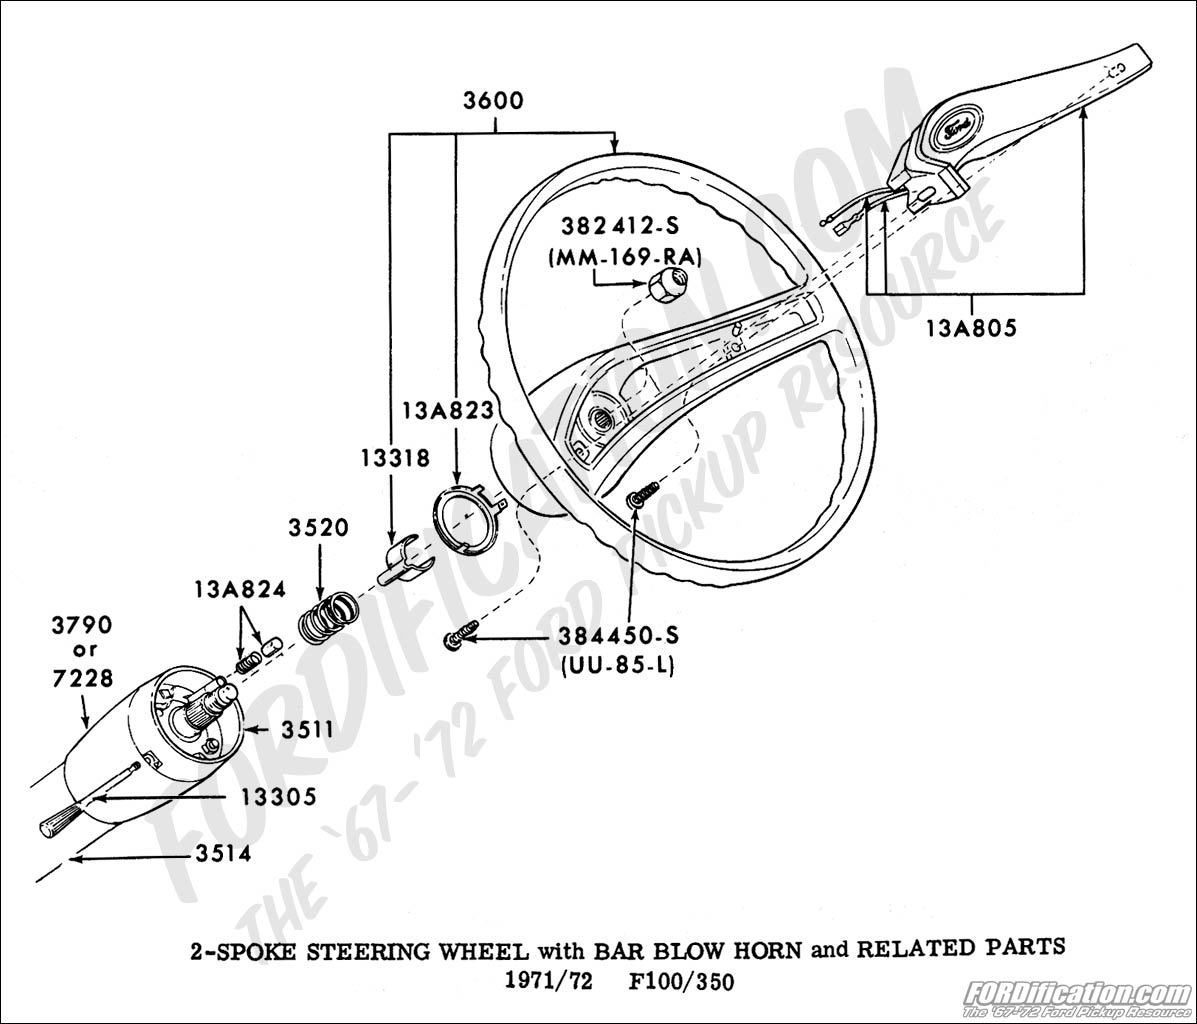 1972 Ford F100 Ignition Switch Wiring Diagram 45 Bronco Steeringwheel 7172 Truck Technical Drawings And Schematics Section I 1971